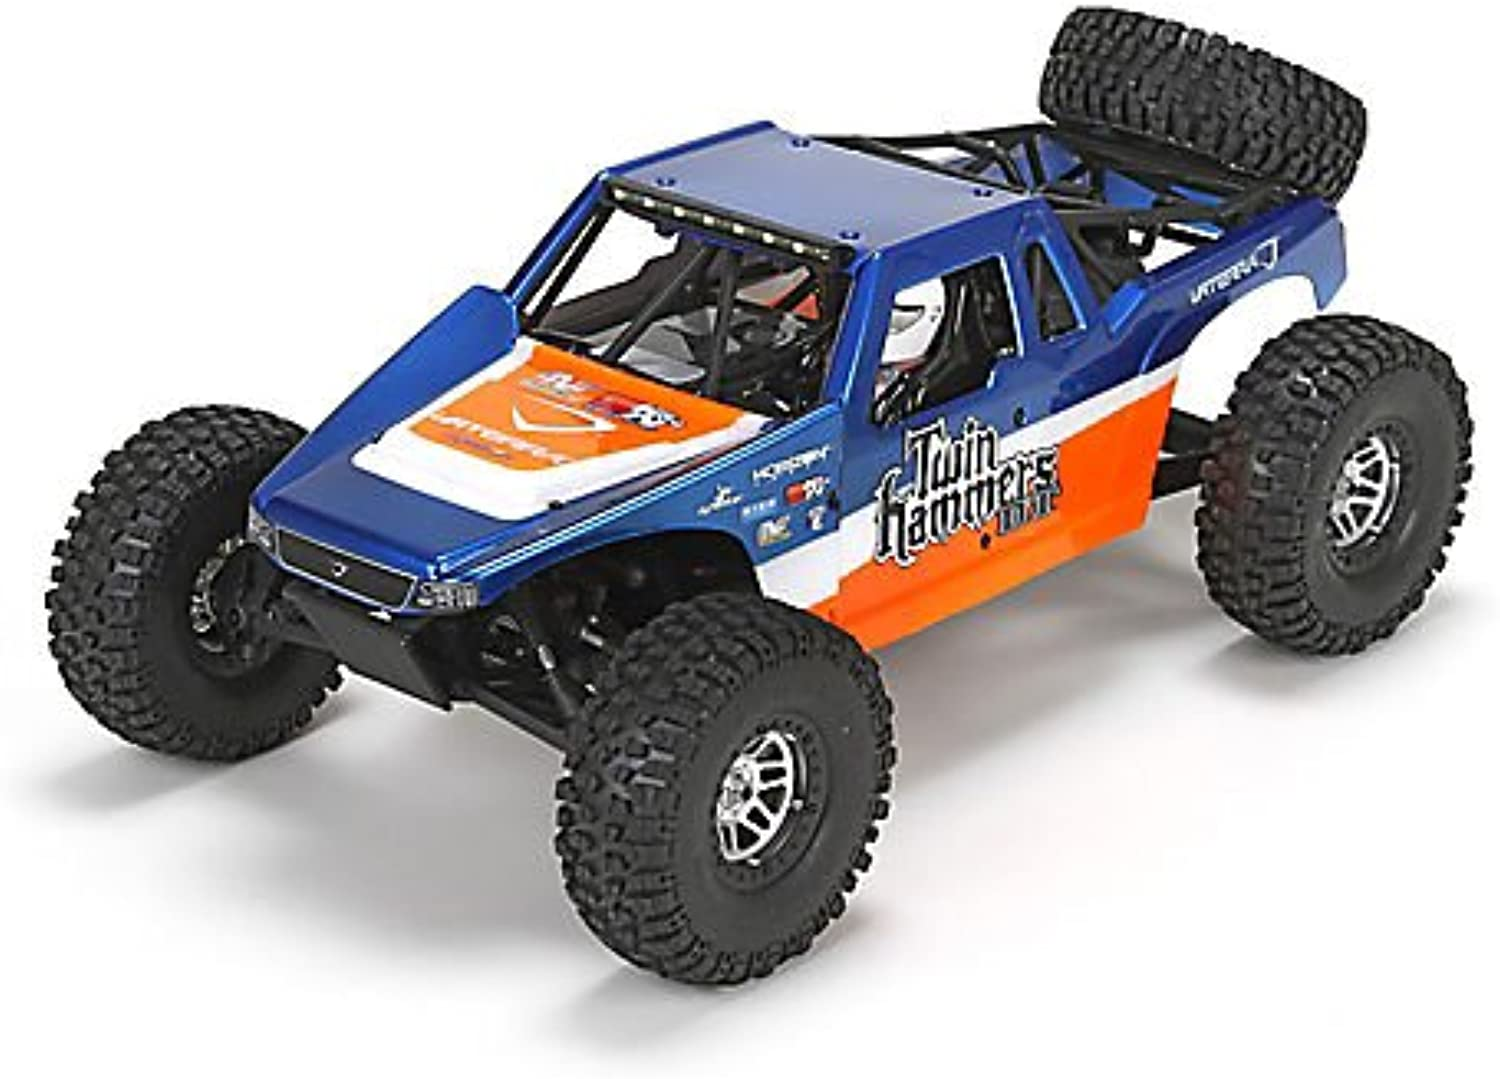 Twin Hammers 1 10 DT 1.9 4WD Desert Truck 1 10 RTR by VATERRA